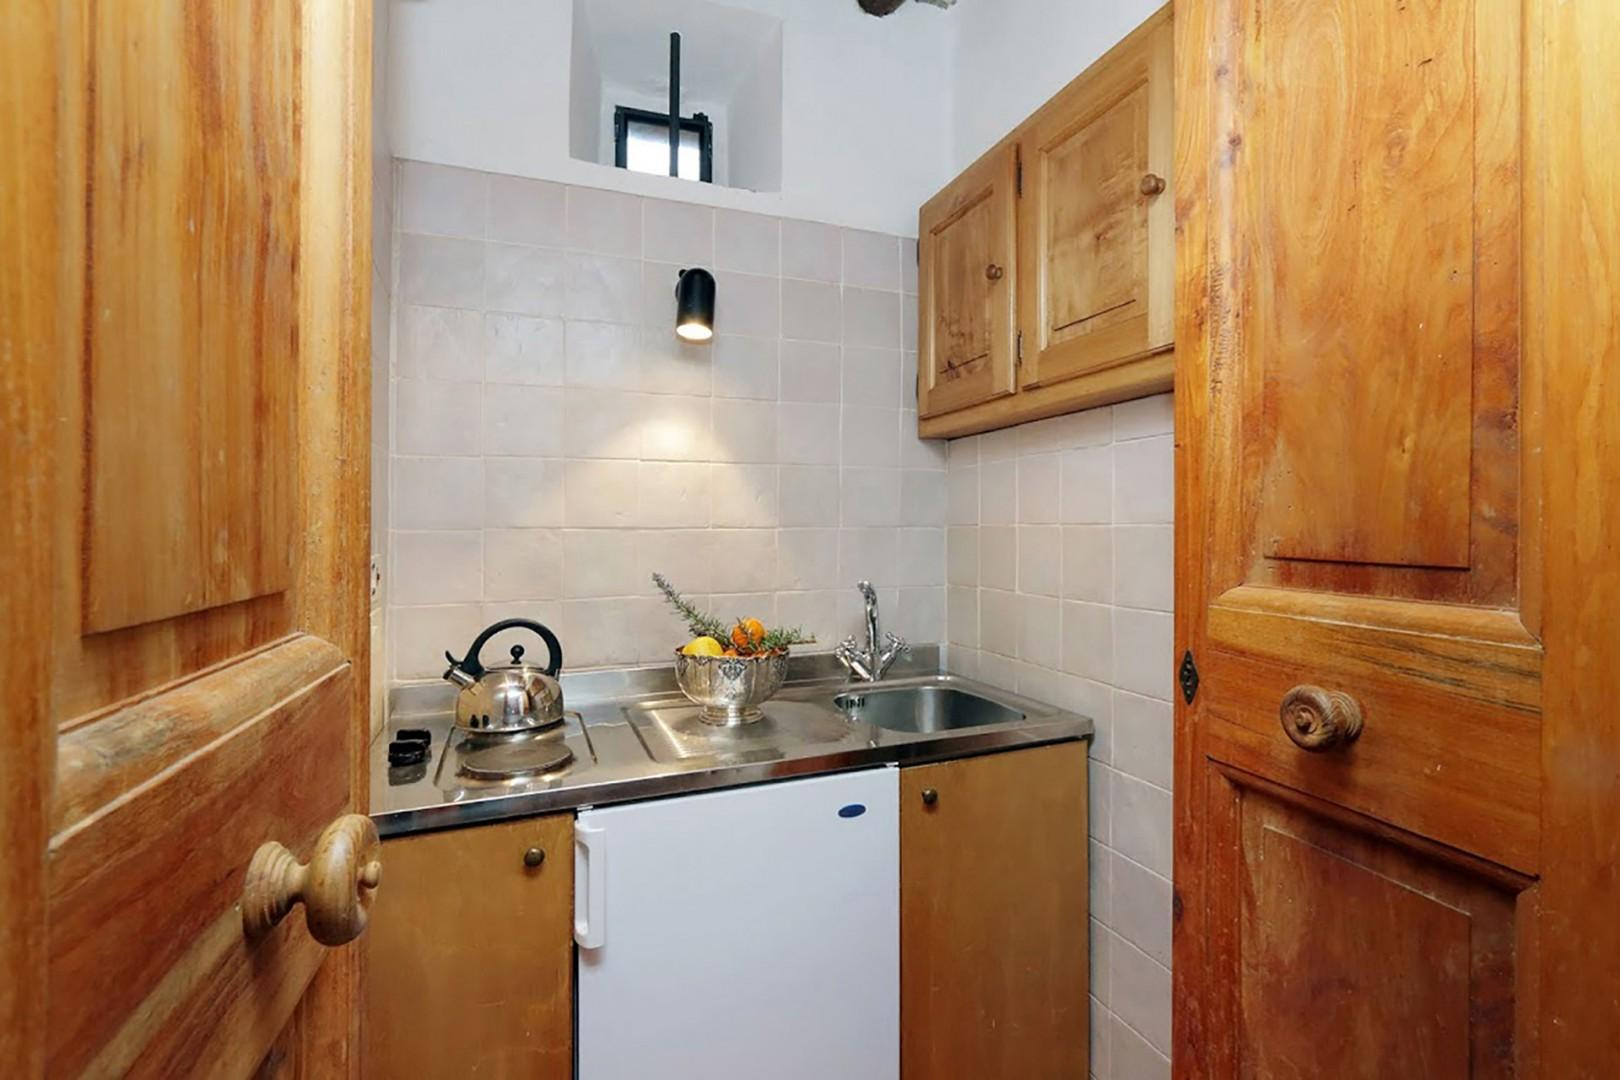 Efficiency kitchen in the single bedroom apartment on the lower level.